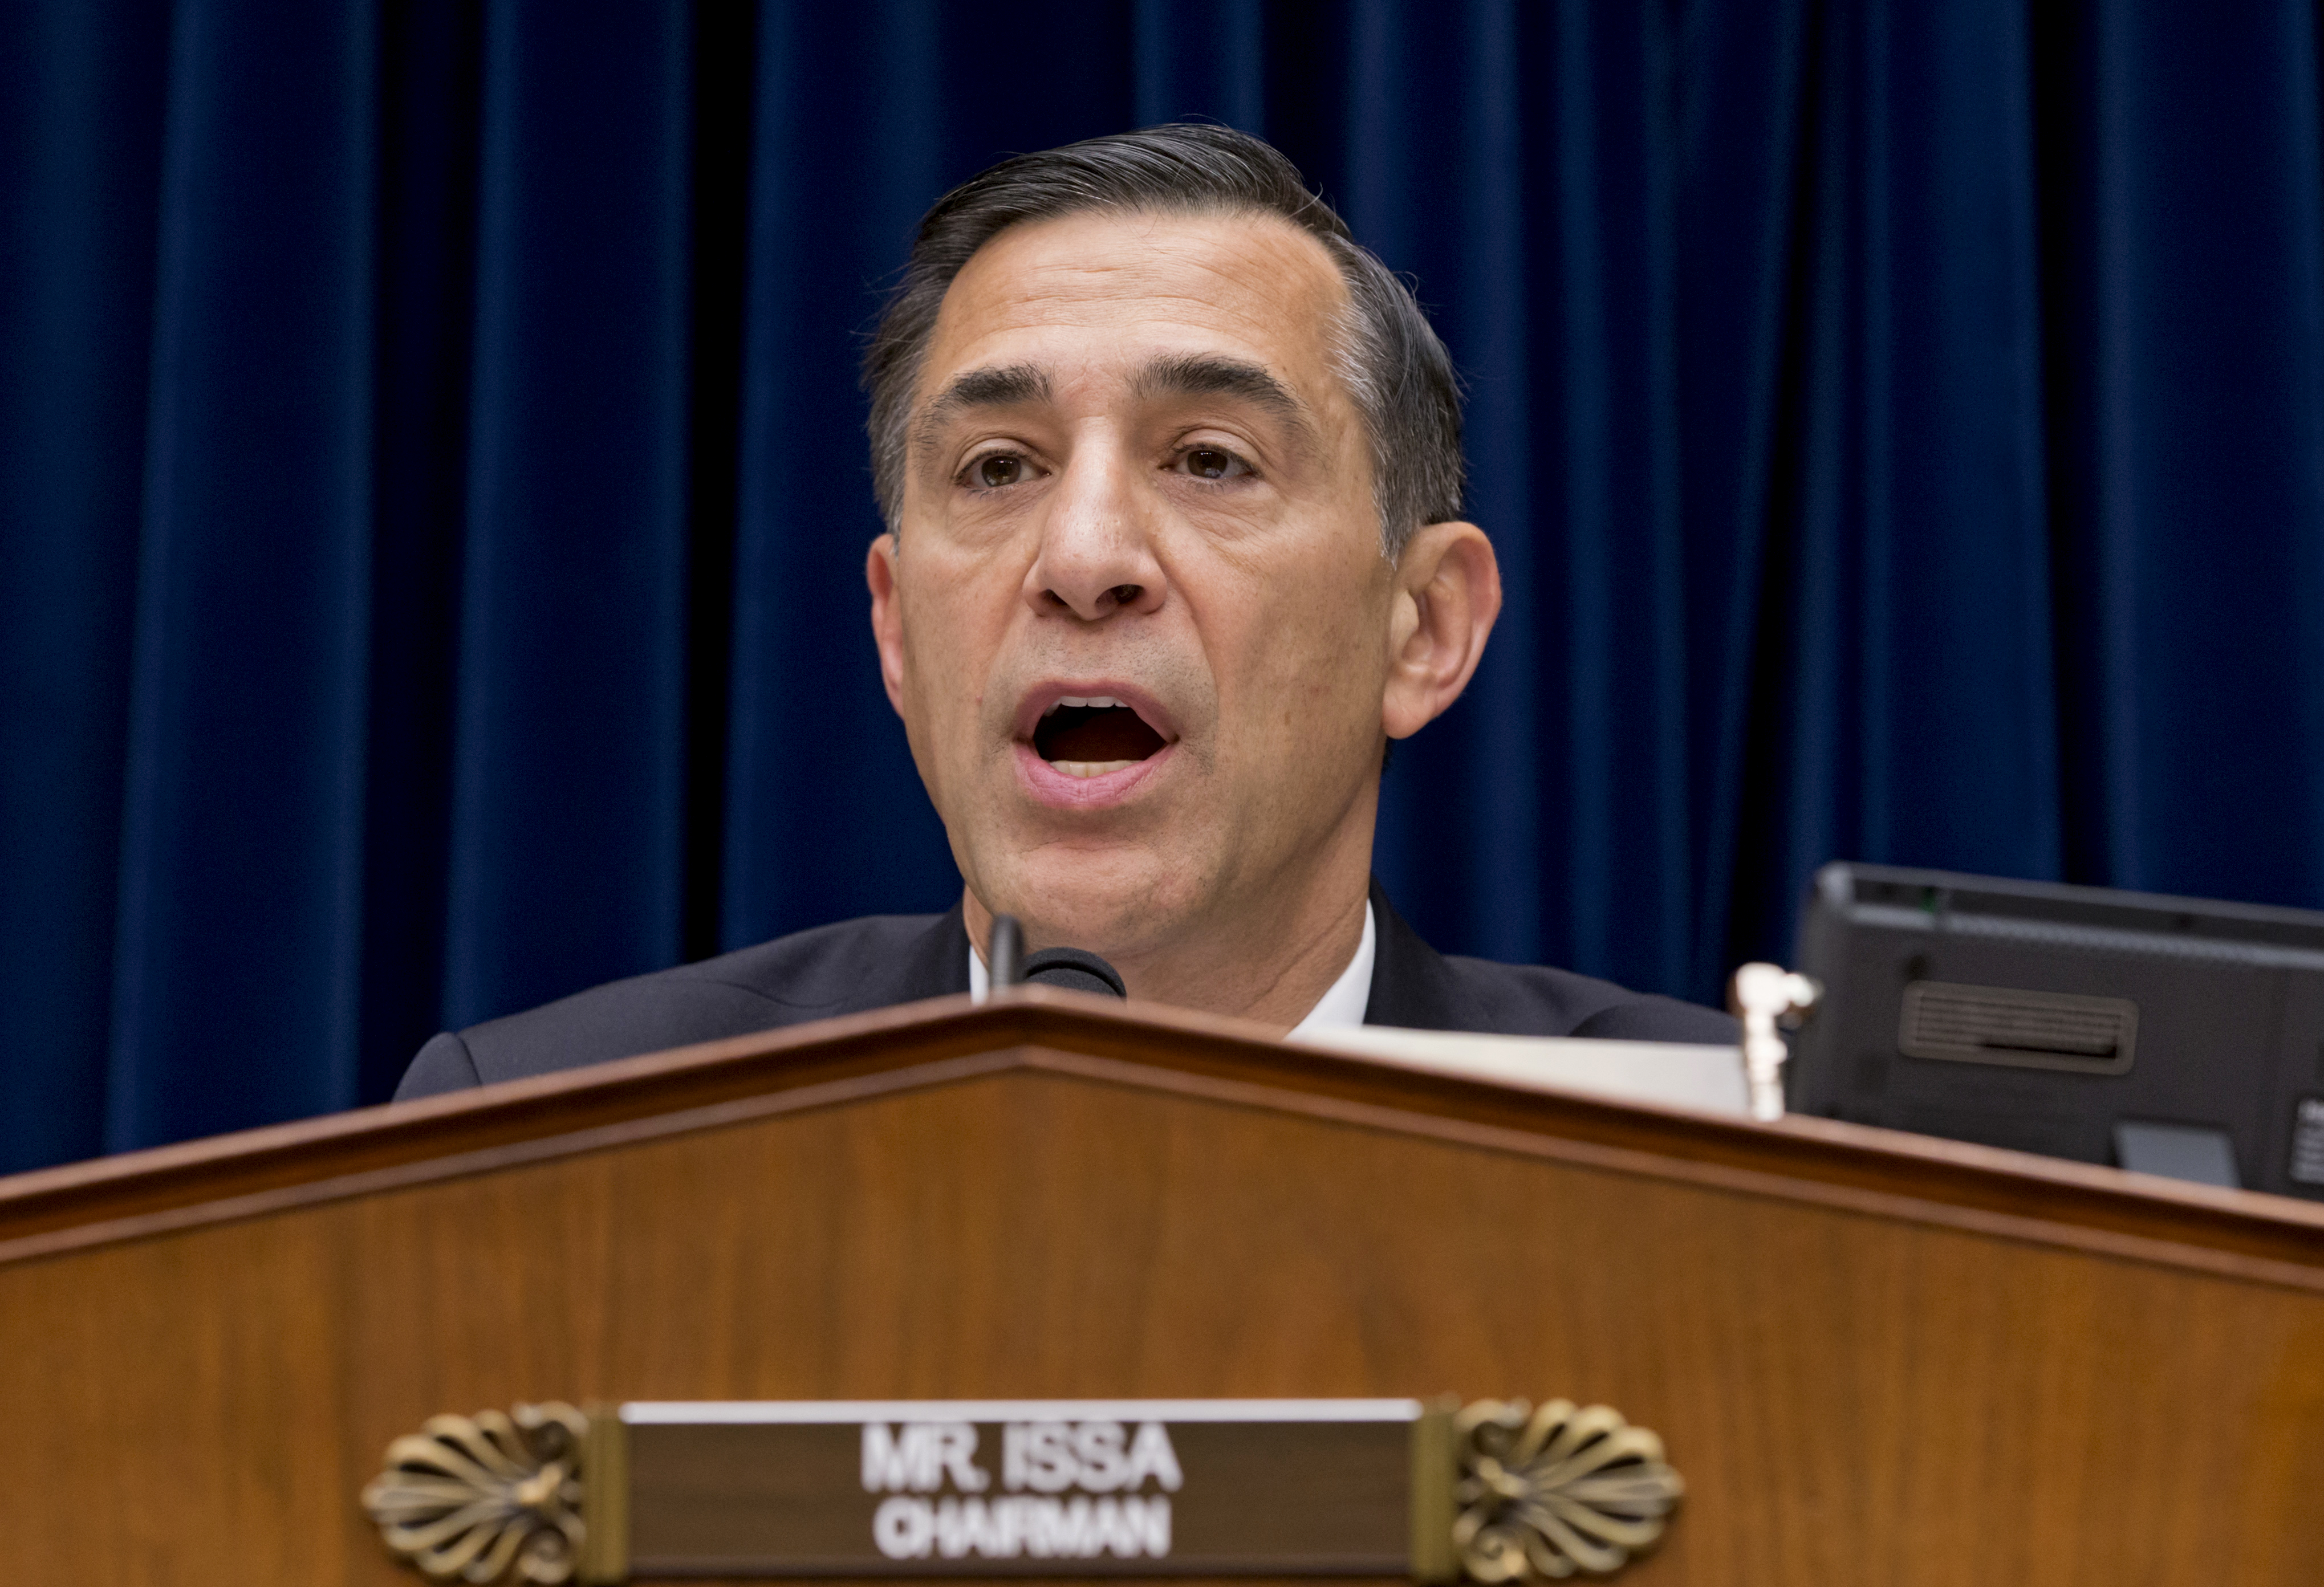 House Oversight Committee Chairman Rep. Darrell Issa, R-Calif. makes an opening statement as his panel holds its first public hearing on problems implementing the Obamacare healthcare program, on Capitol Hill in Washington, Wednesday, Nov. 13, 2013.